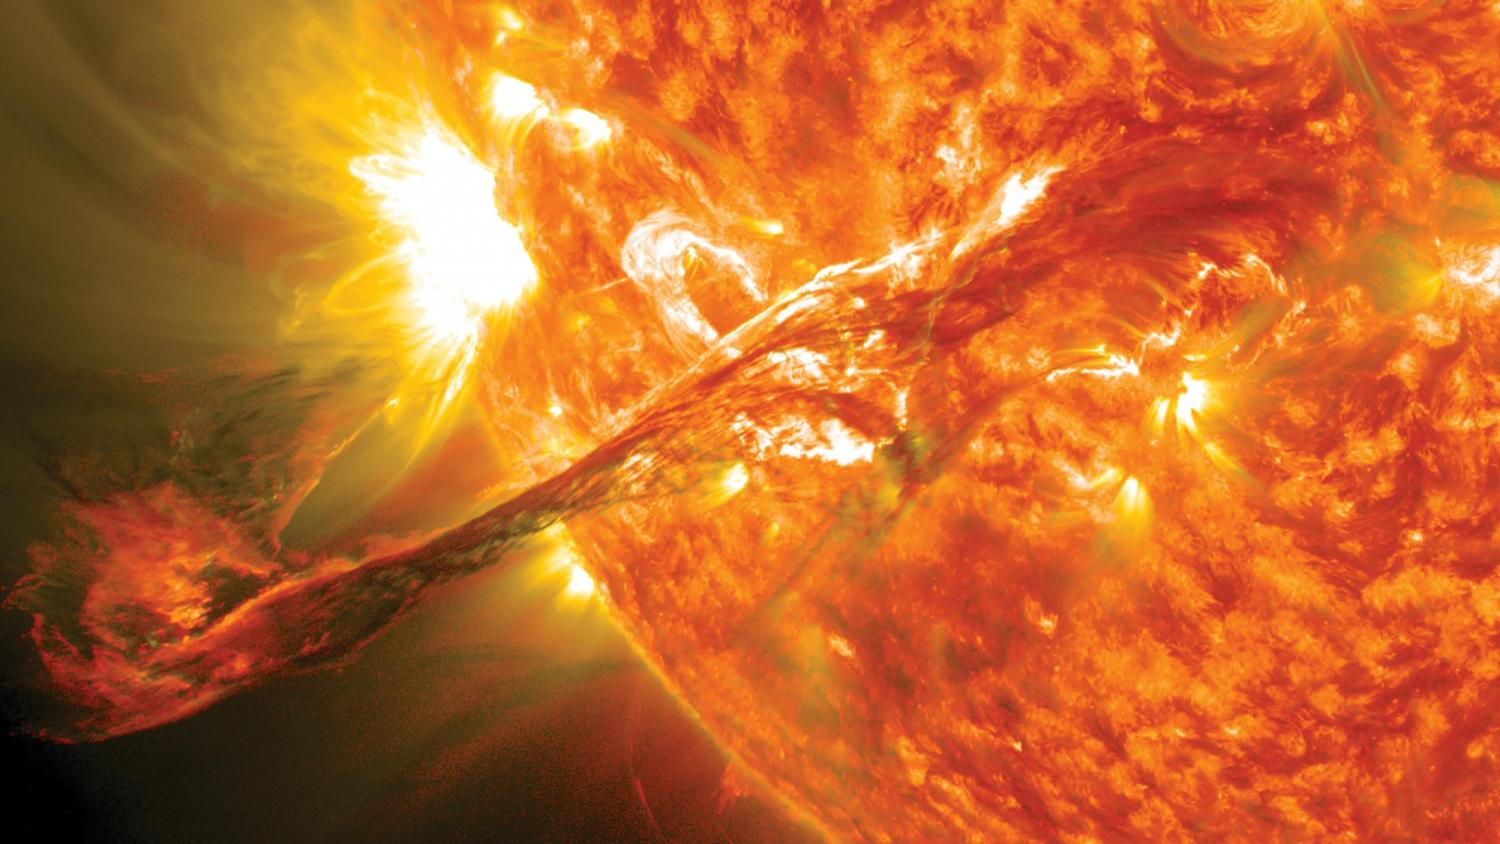 Coronal mass ejection erupts on the sun